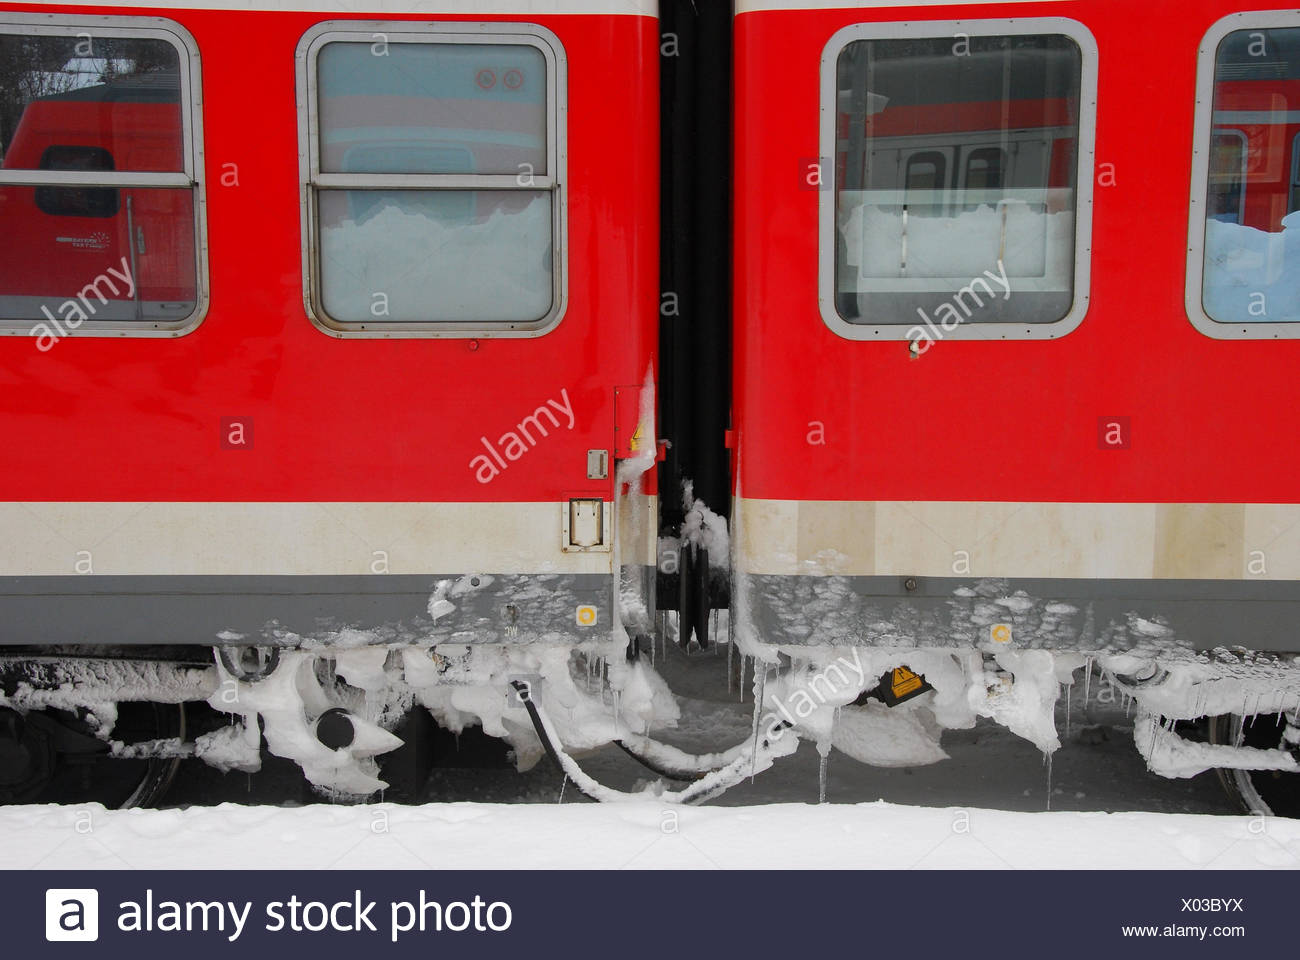 Federal Railroad, train, carriages, freezes over, winter, - Stock Image